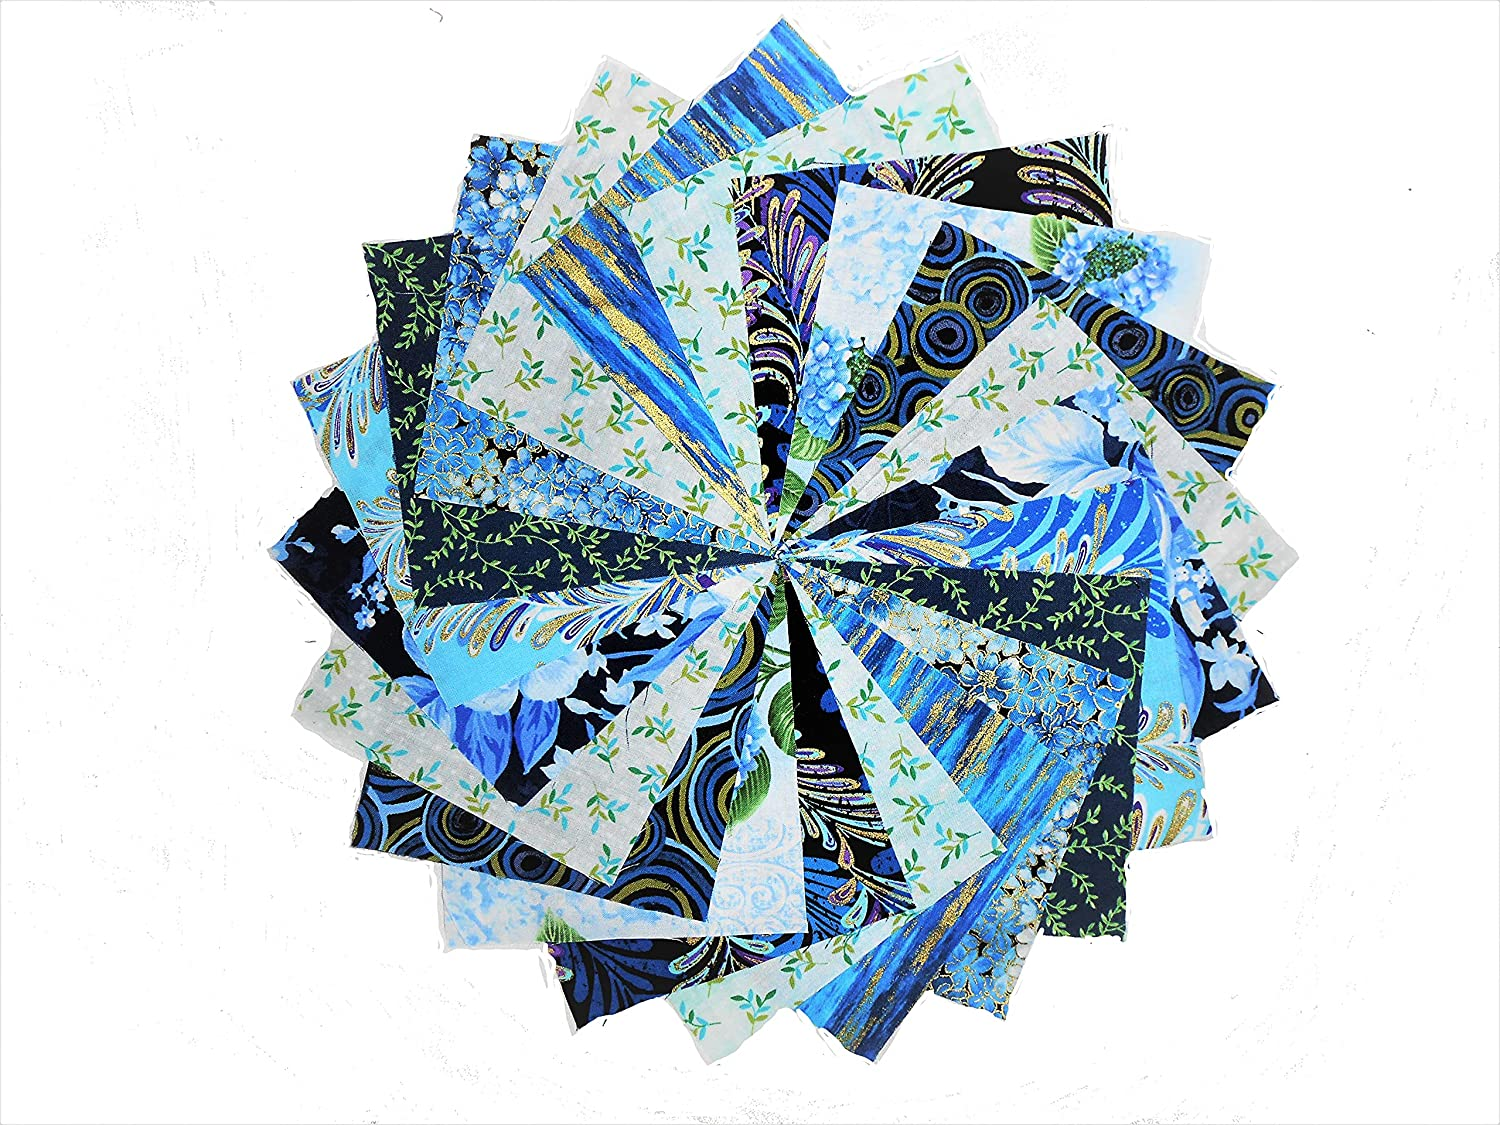 40 5 Inch Midnight in The Garden Quilting Squares Charm Pack by Kanvas Studio 10 colorways